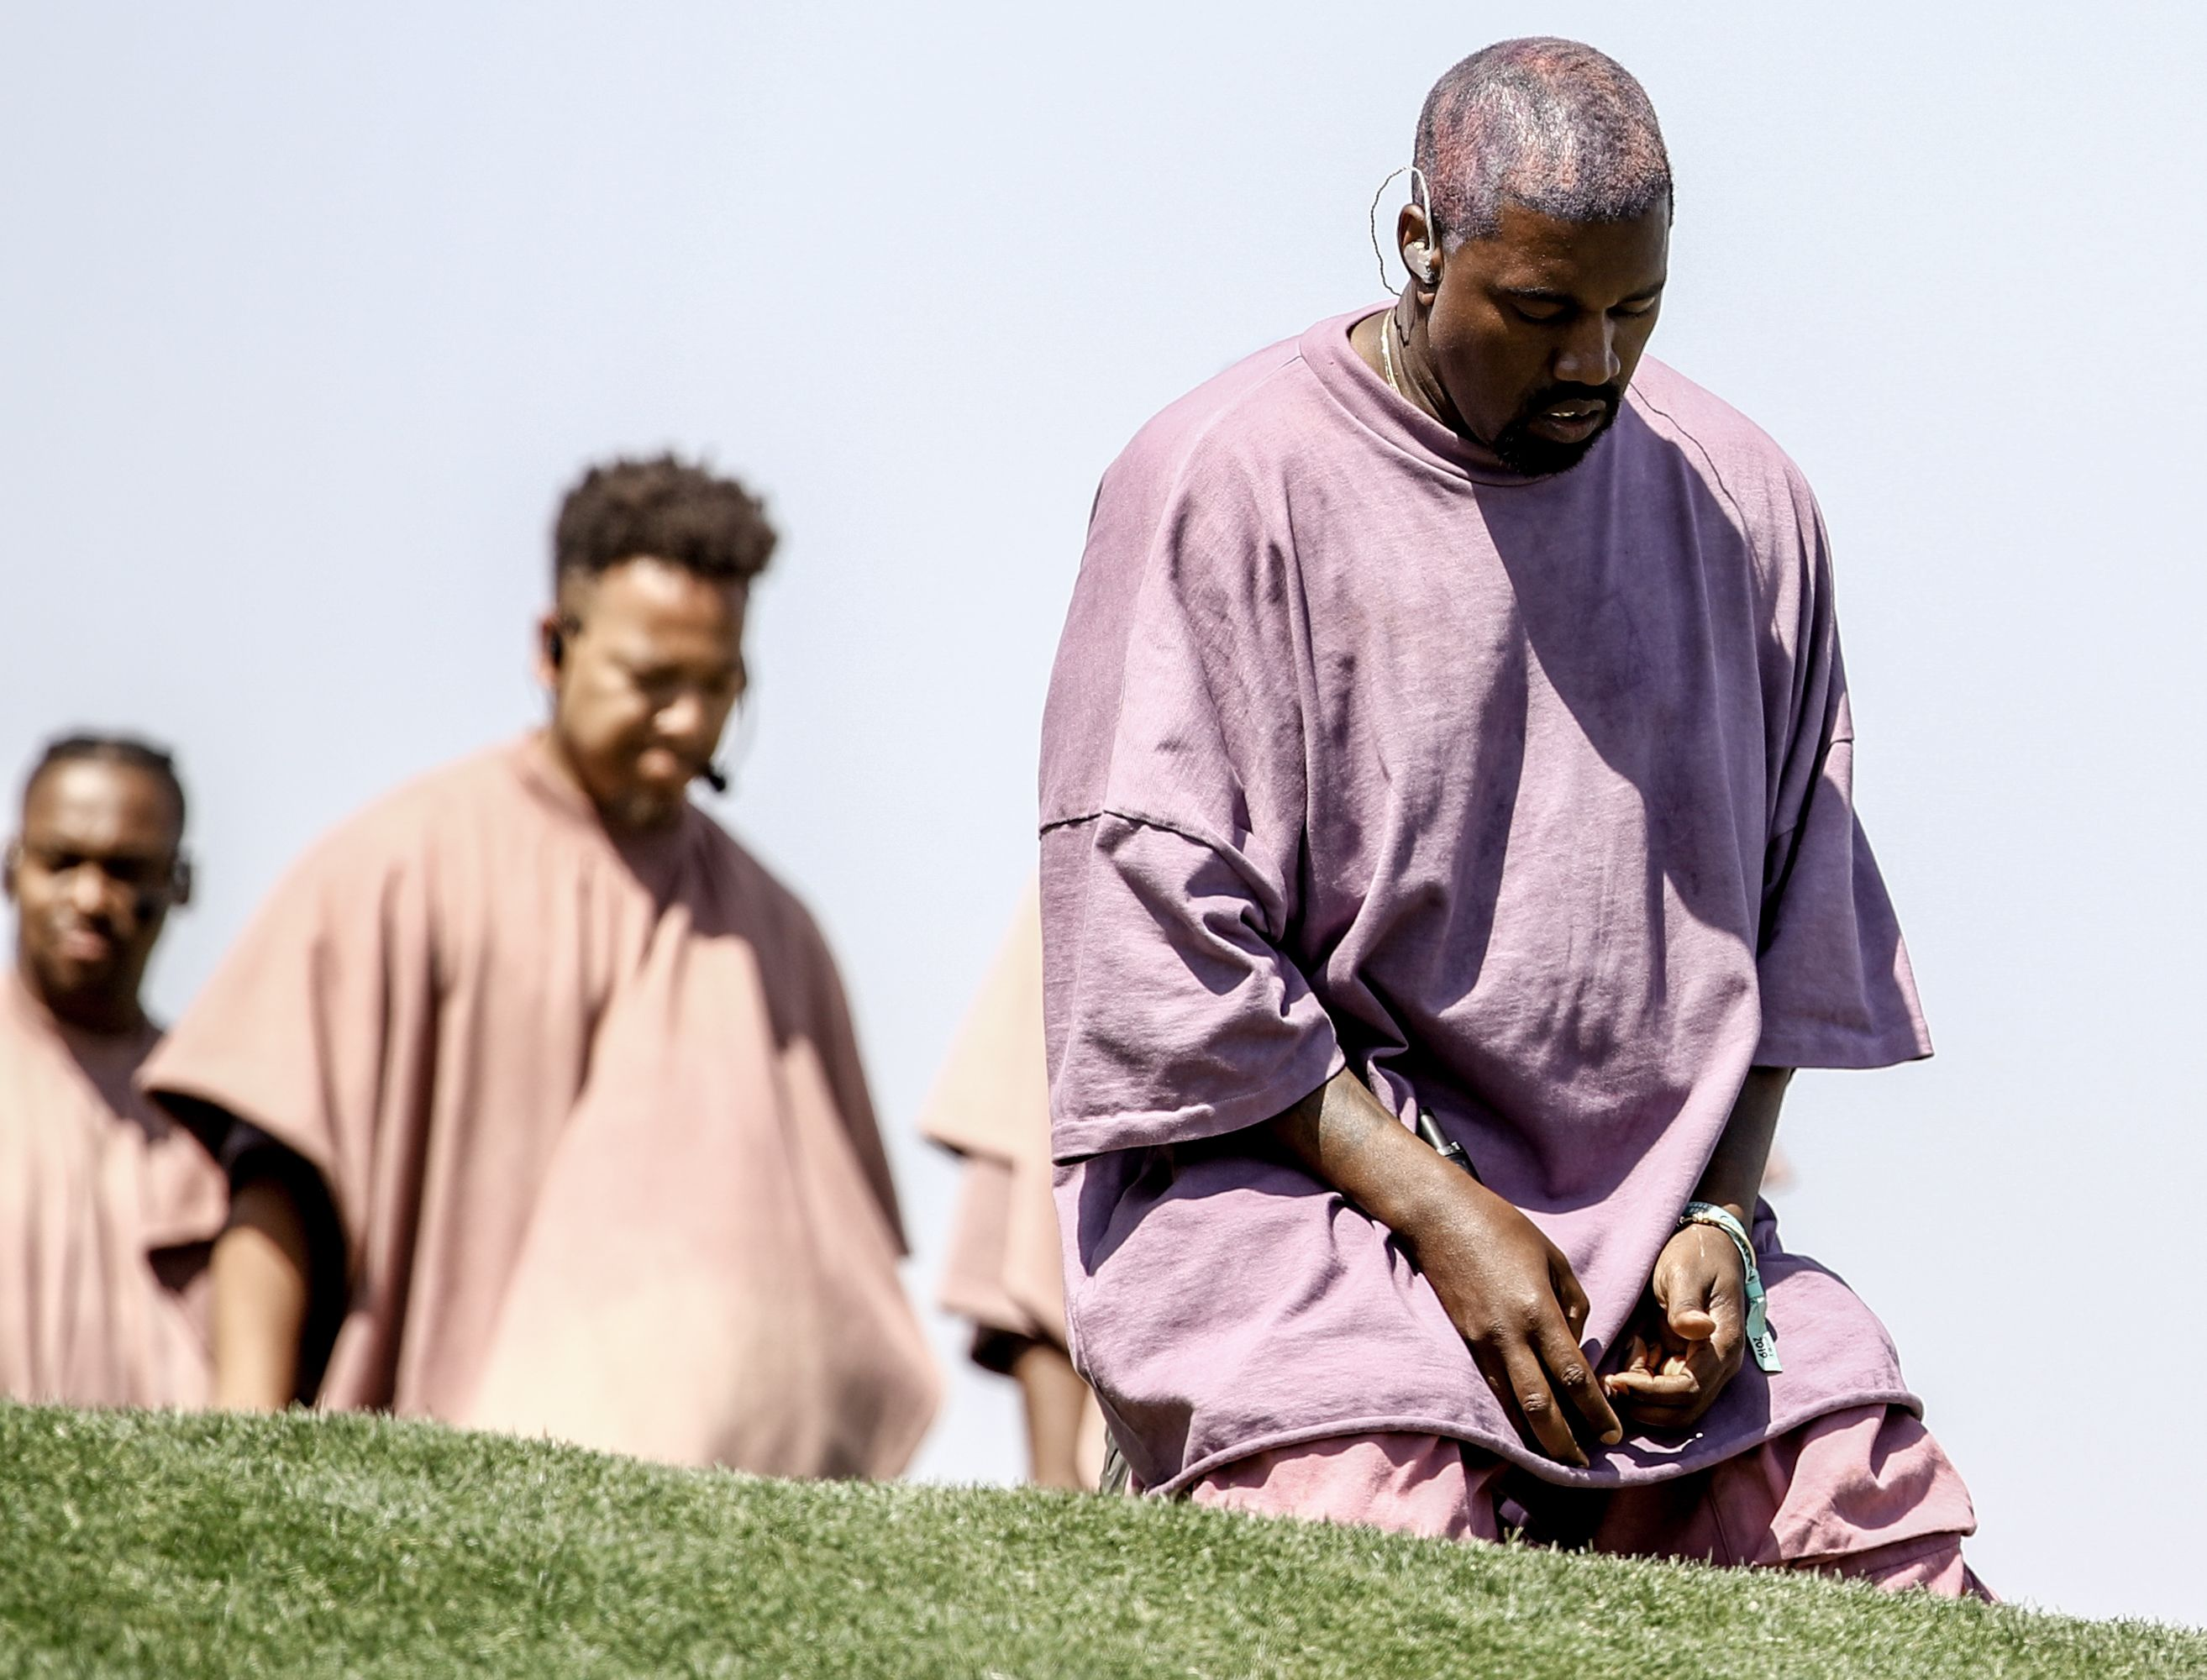 Kanye West performs Sunday Service / Getty Images